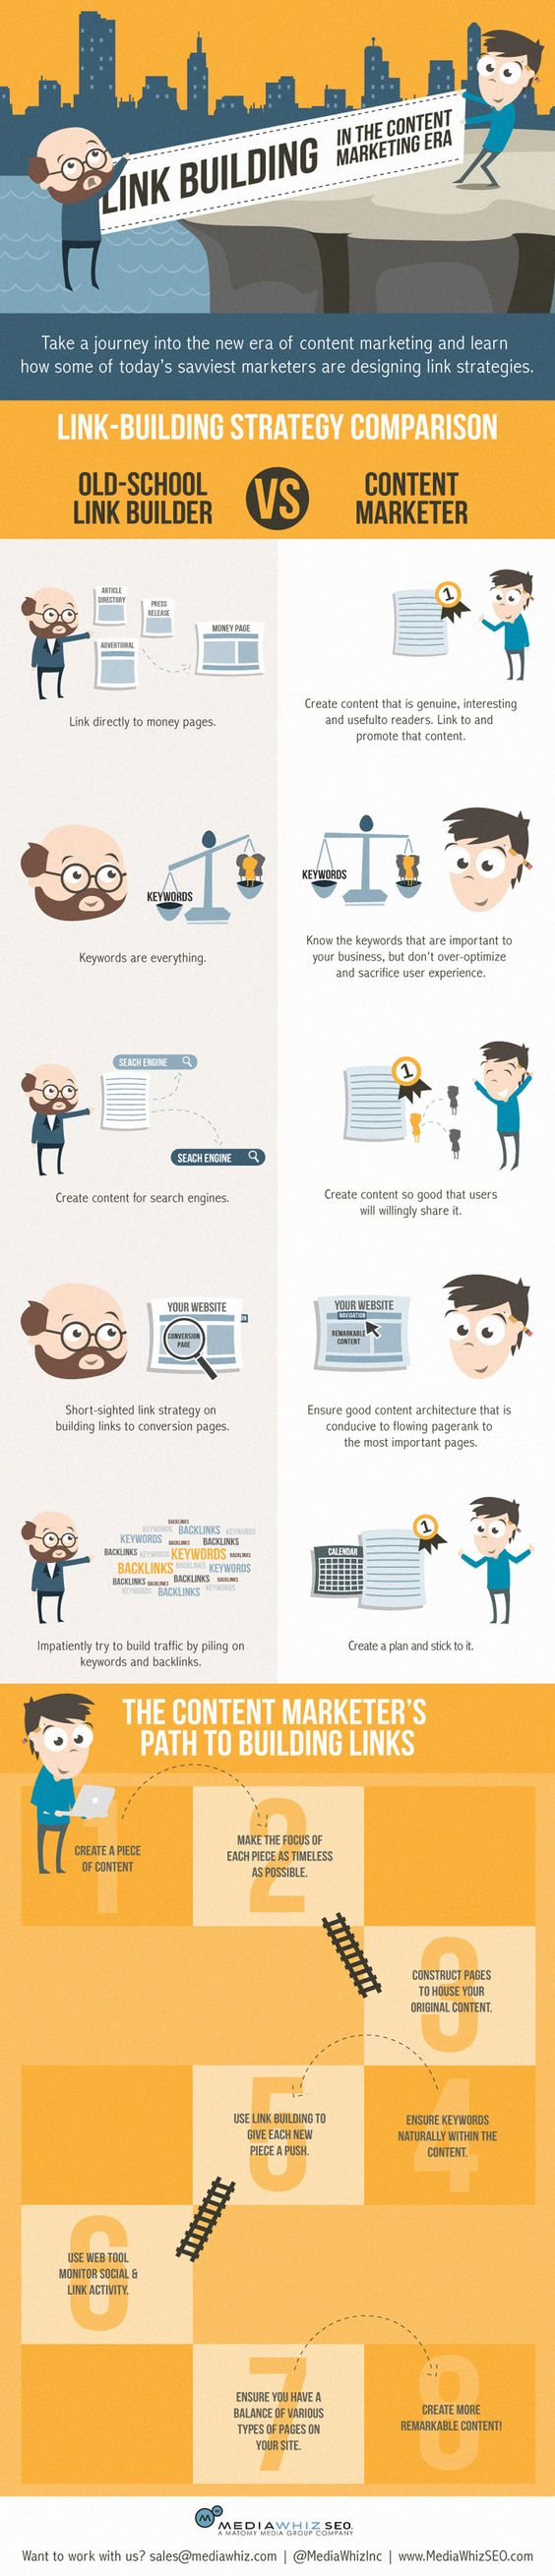 How to Build a Natural Link Profile - Accrding to MediaWhizSEO #contentmarketing #infographic